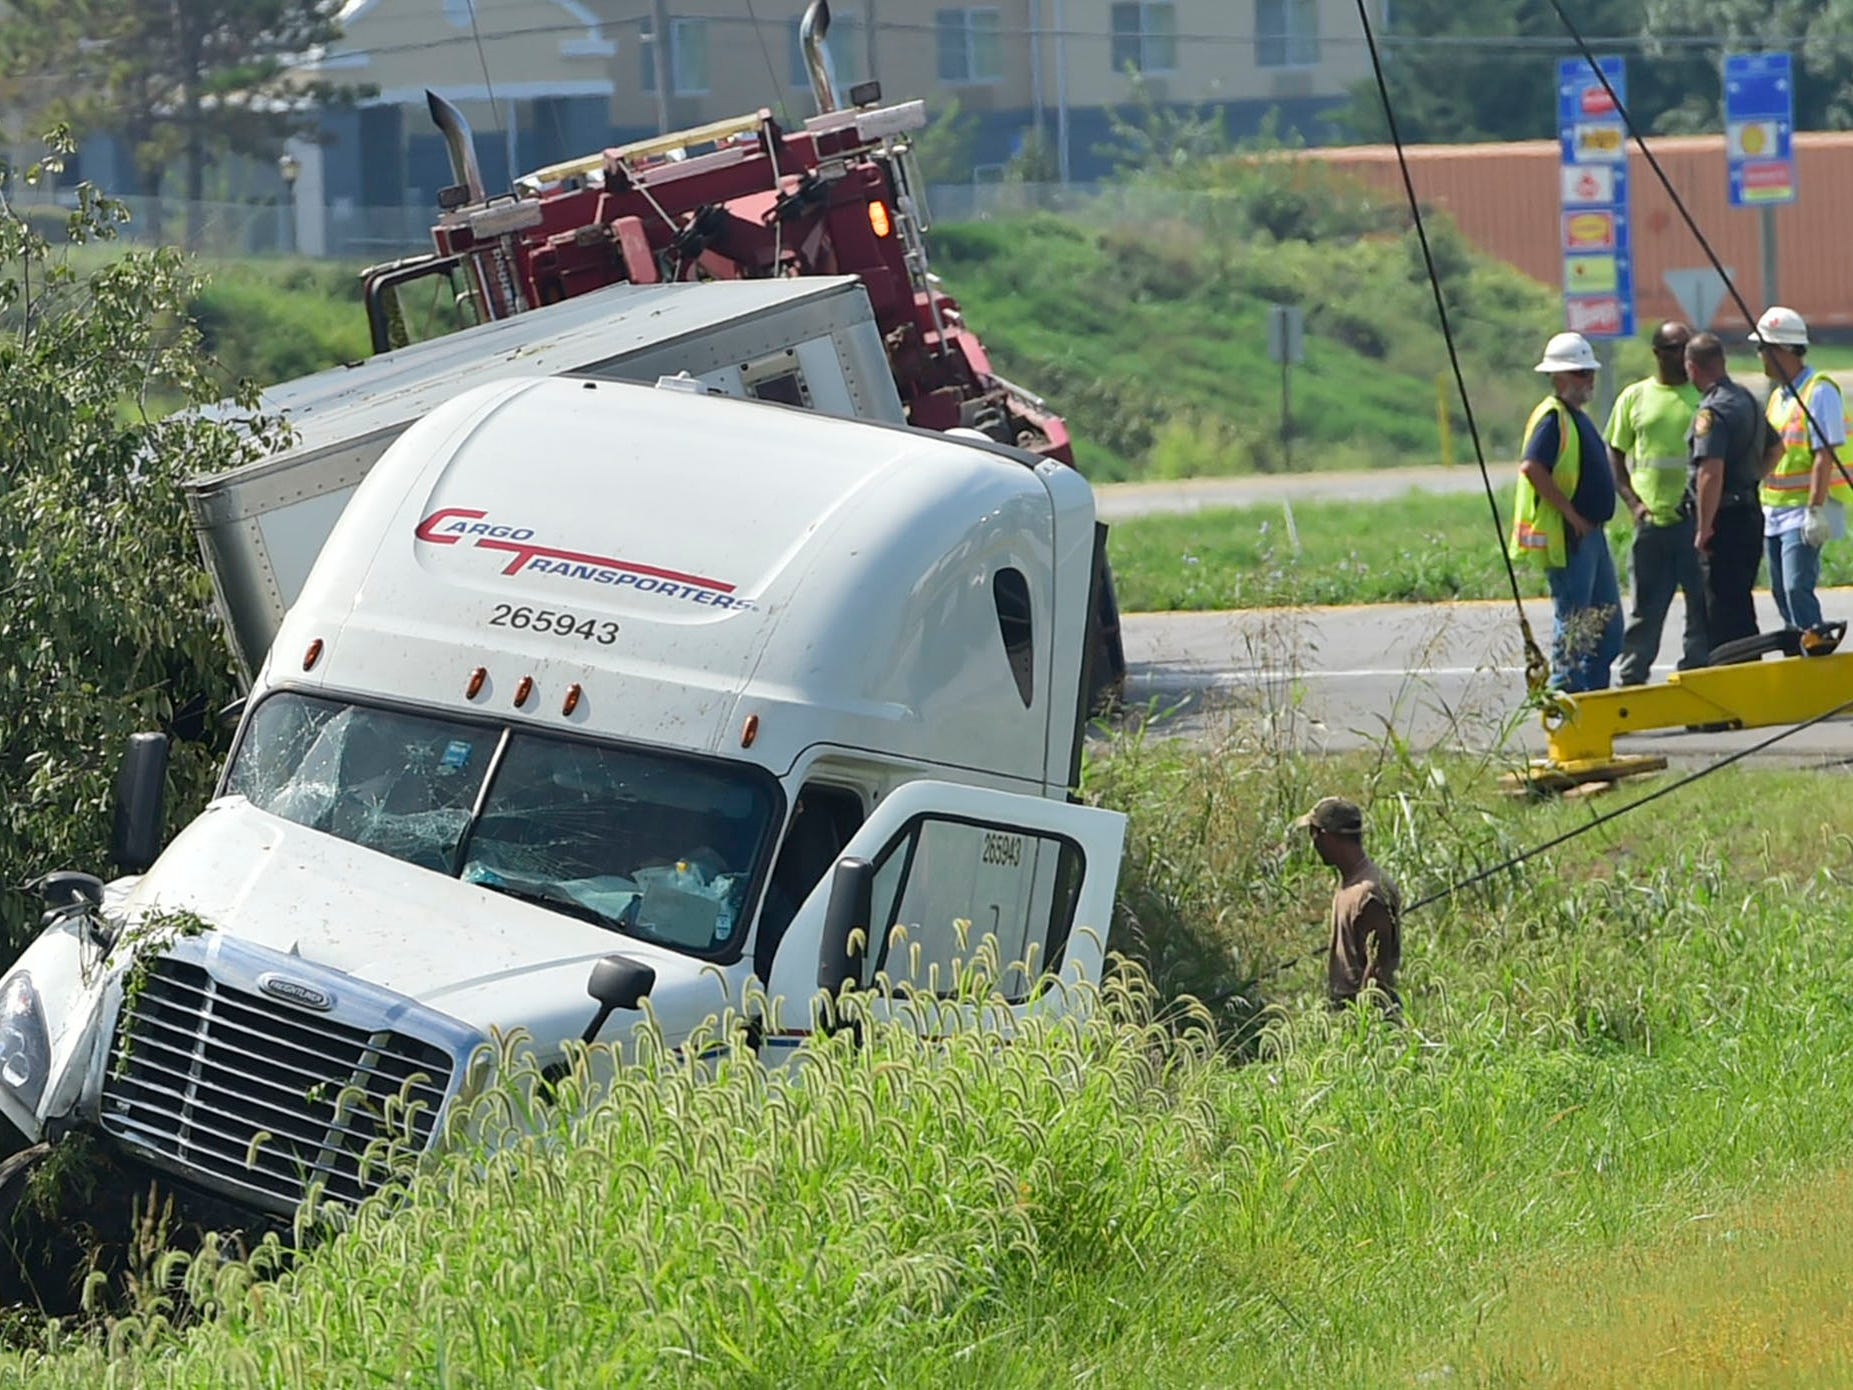 A tractor-trailer rests in a ditch following an accident at Interstate 81 at  northbound Exit 14, Chambersburg. The accident occured around 10:30am Thursday Sept. 6, 2018.